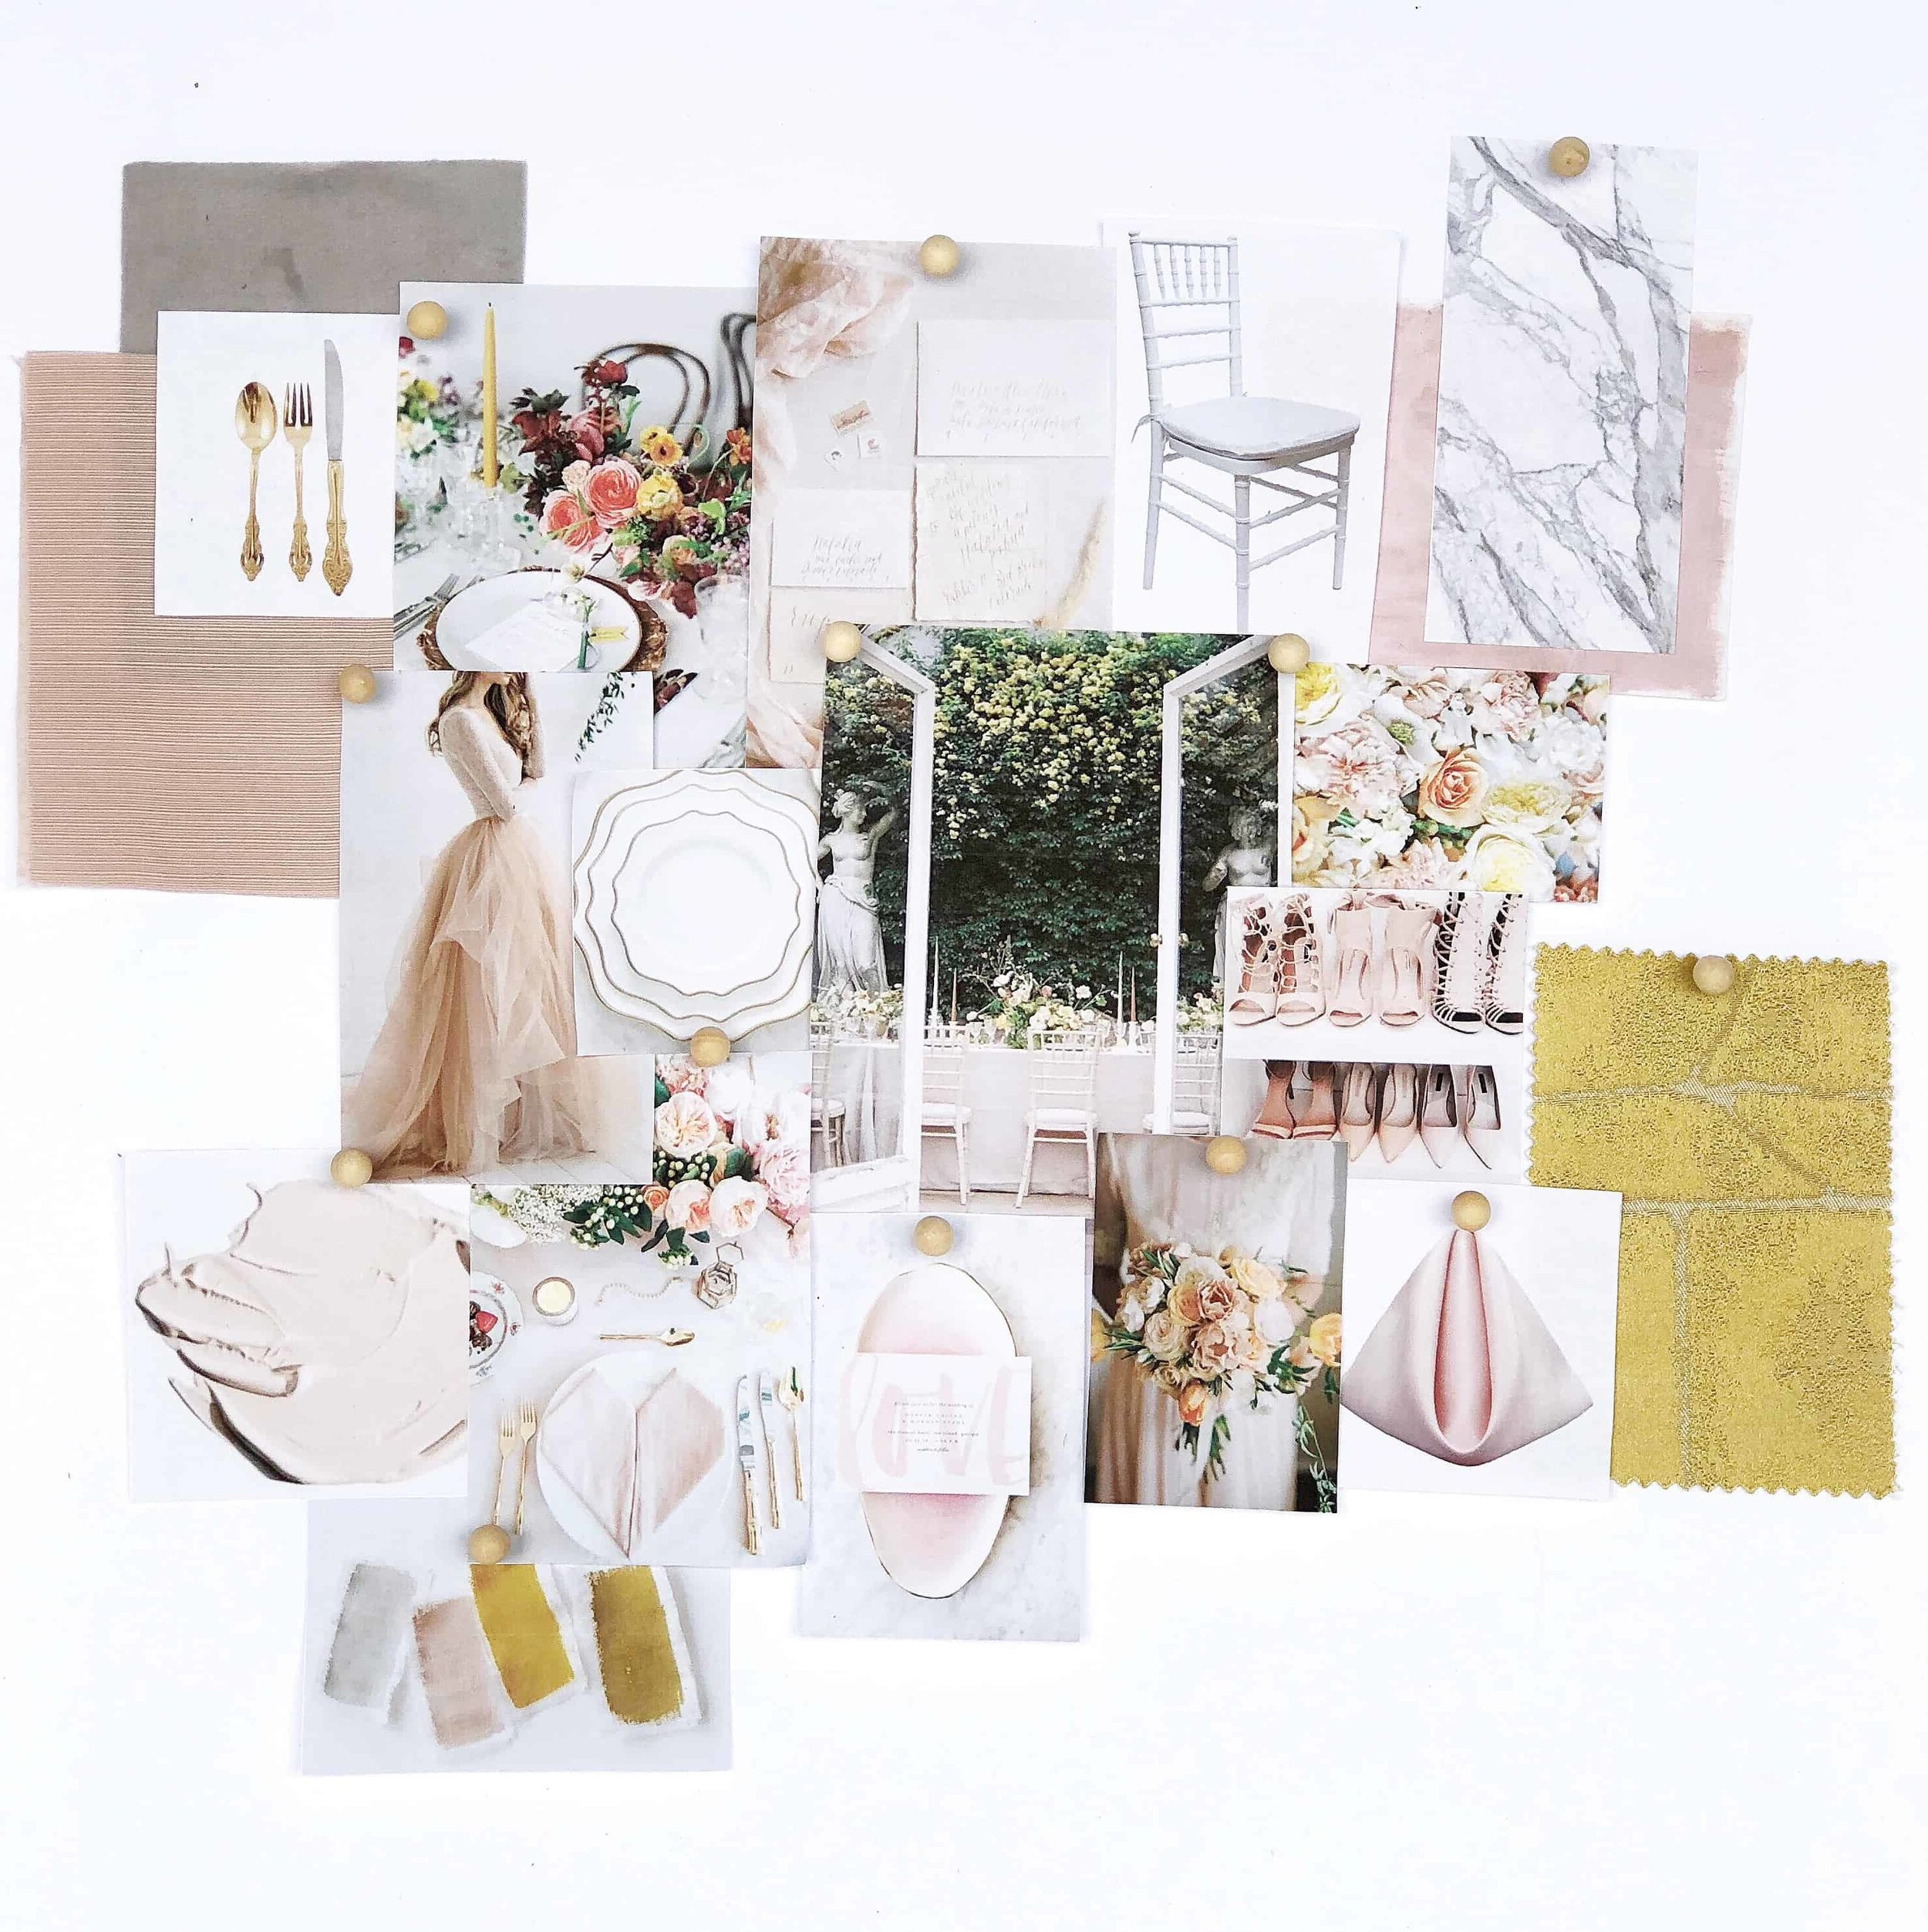 Blush-Mustard-Grey-Gold-Wedding-Mood-Board-The-Busy-Bee-Events-Design-12-1.jpg